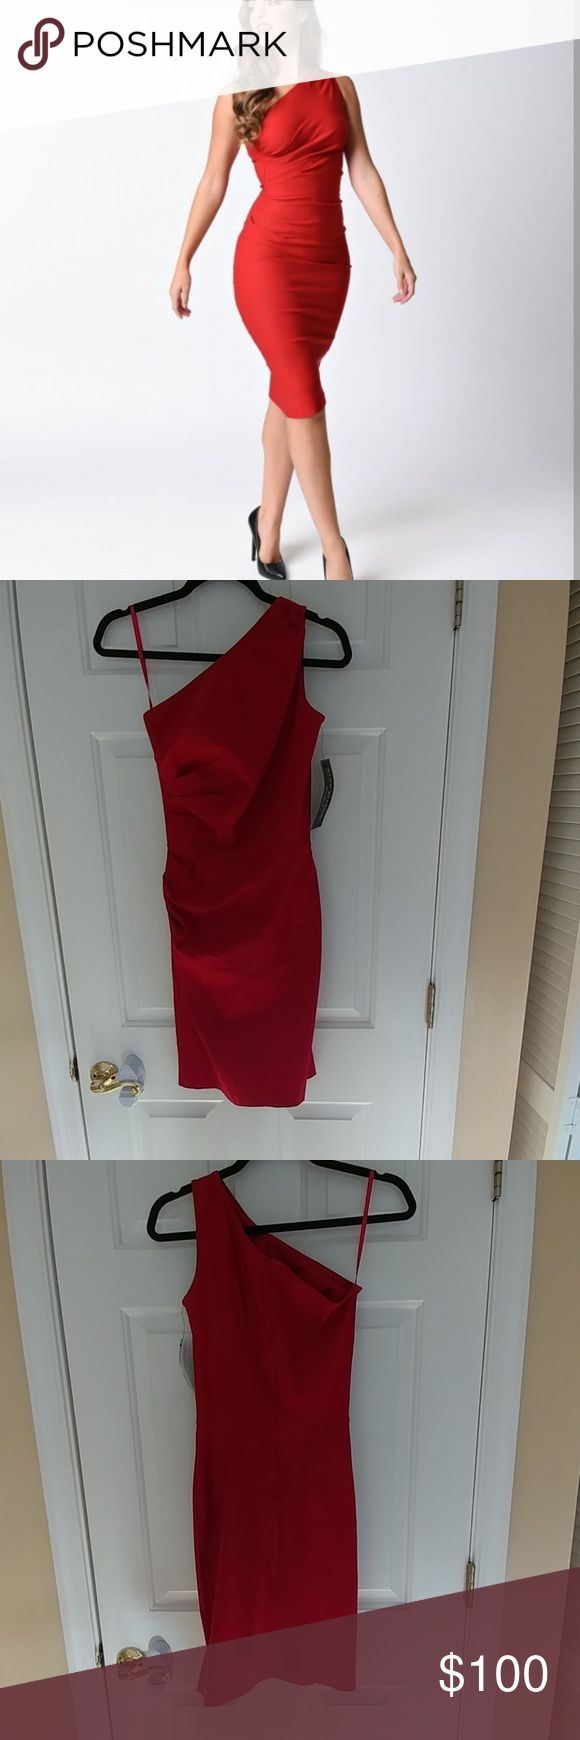 Stop Staring Ava Dress NWT never worn size 8 beautiful vintage style dress. Curve hugging and extremely flattering, the material has fairly good stretch as well. French Connection Dresses One Shoulder